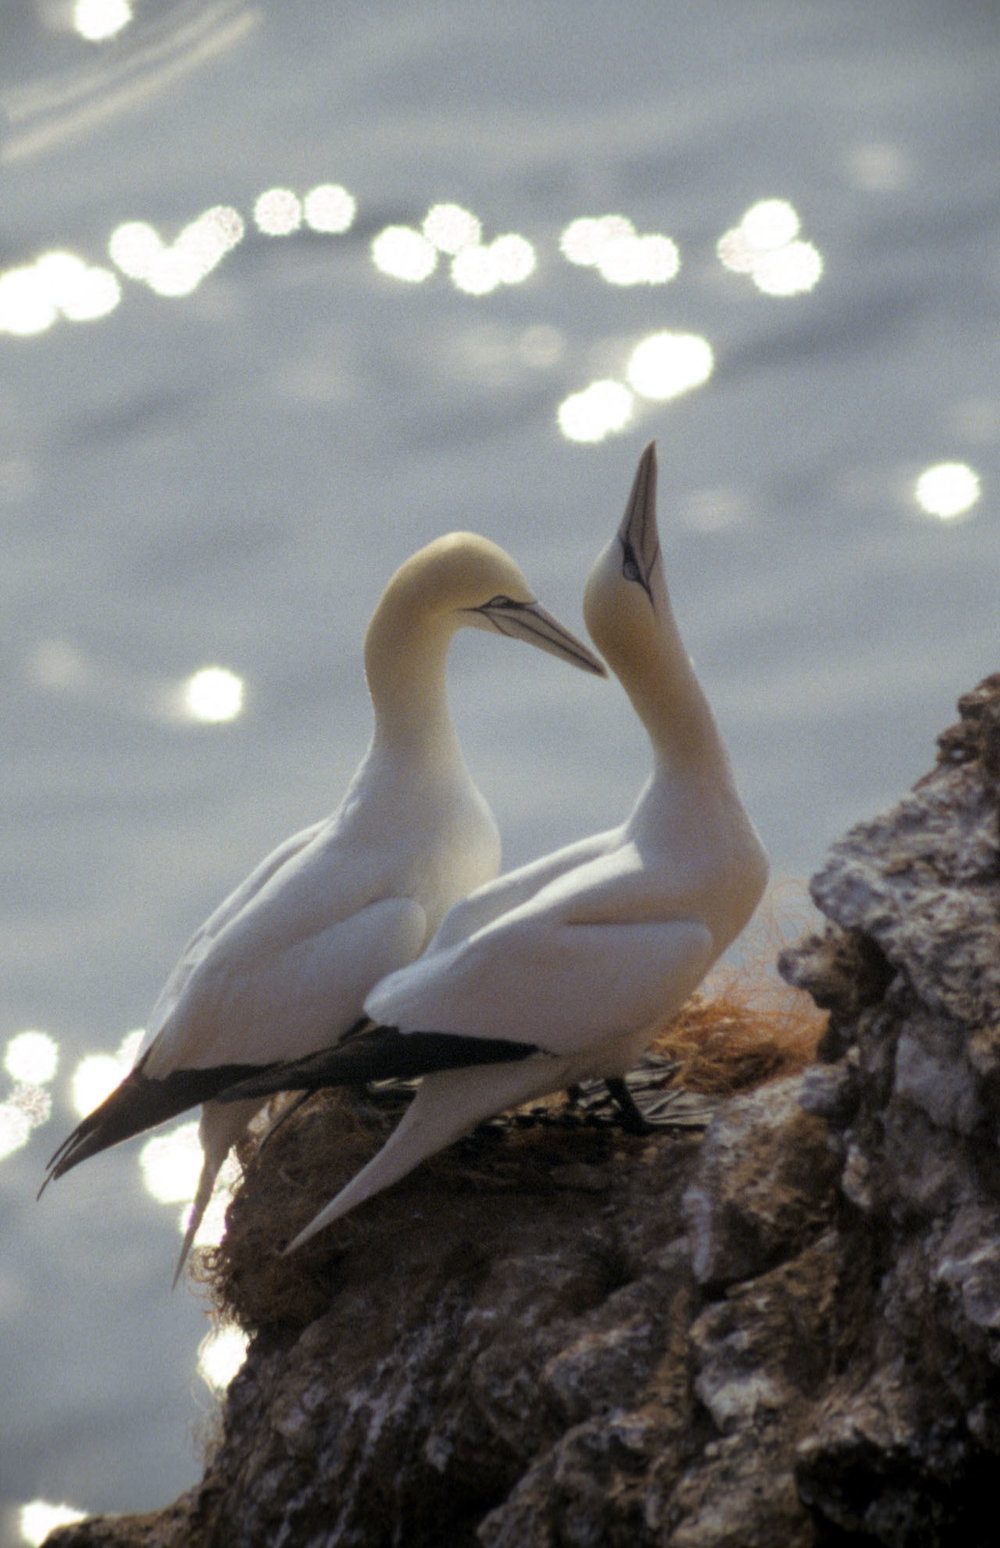 A Northern gannet at the bird colony of Helgoland, North Sea, 2002. Photograph by Michael Haferkamp